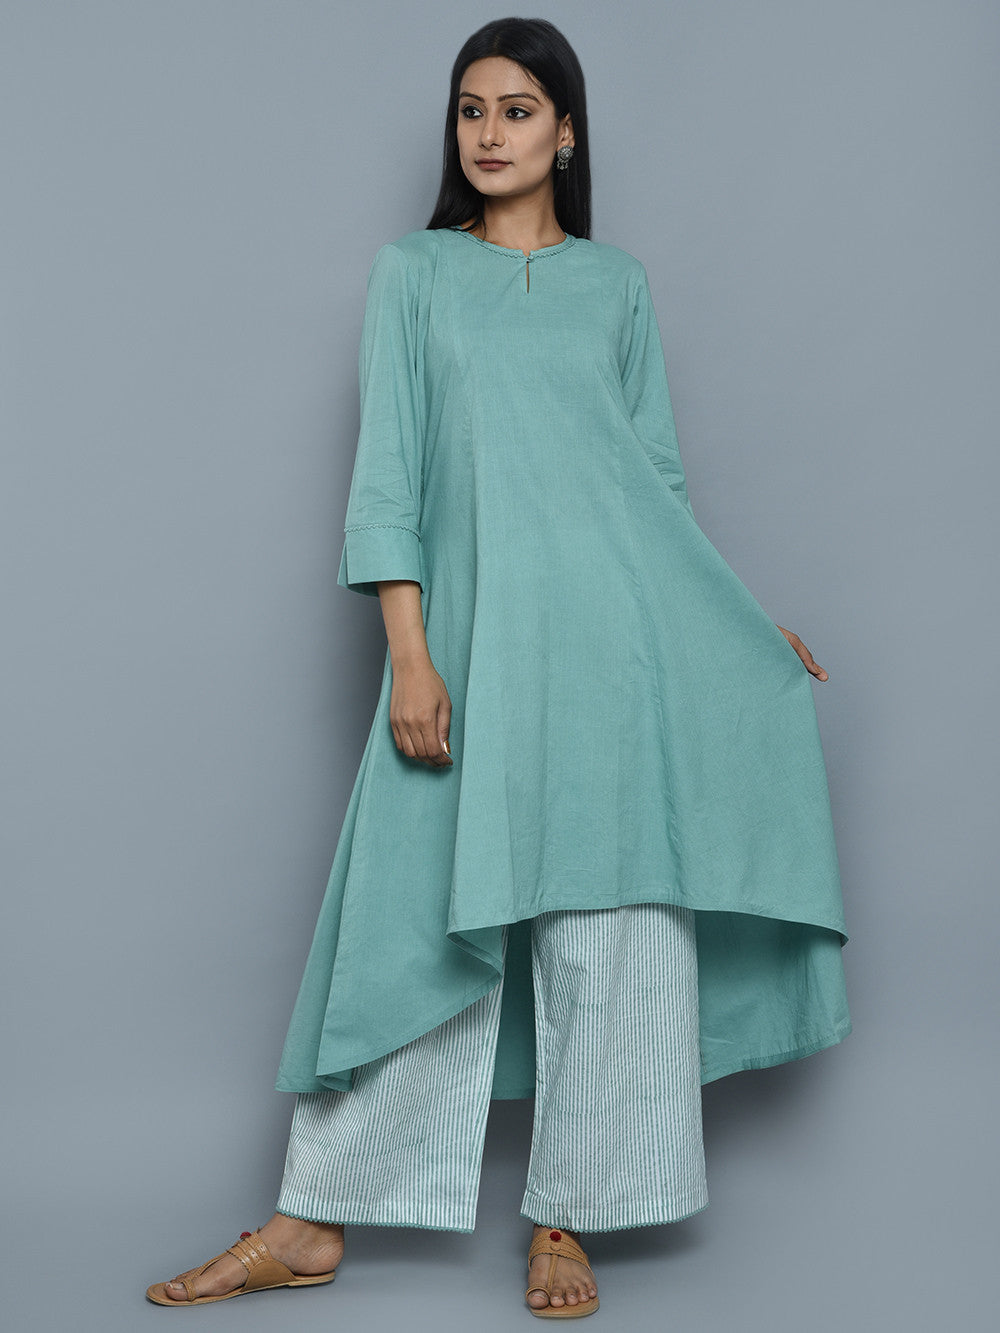 Monochrome pastel kurta-palazzo from The Loom